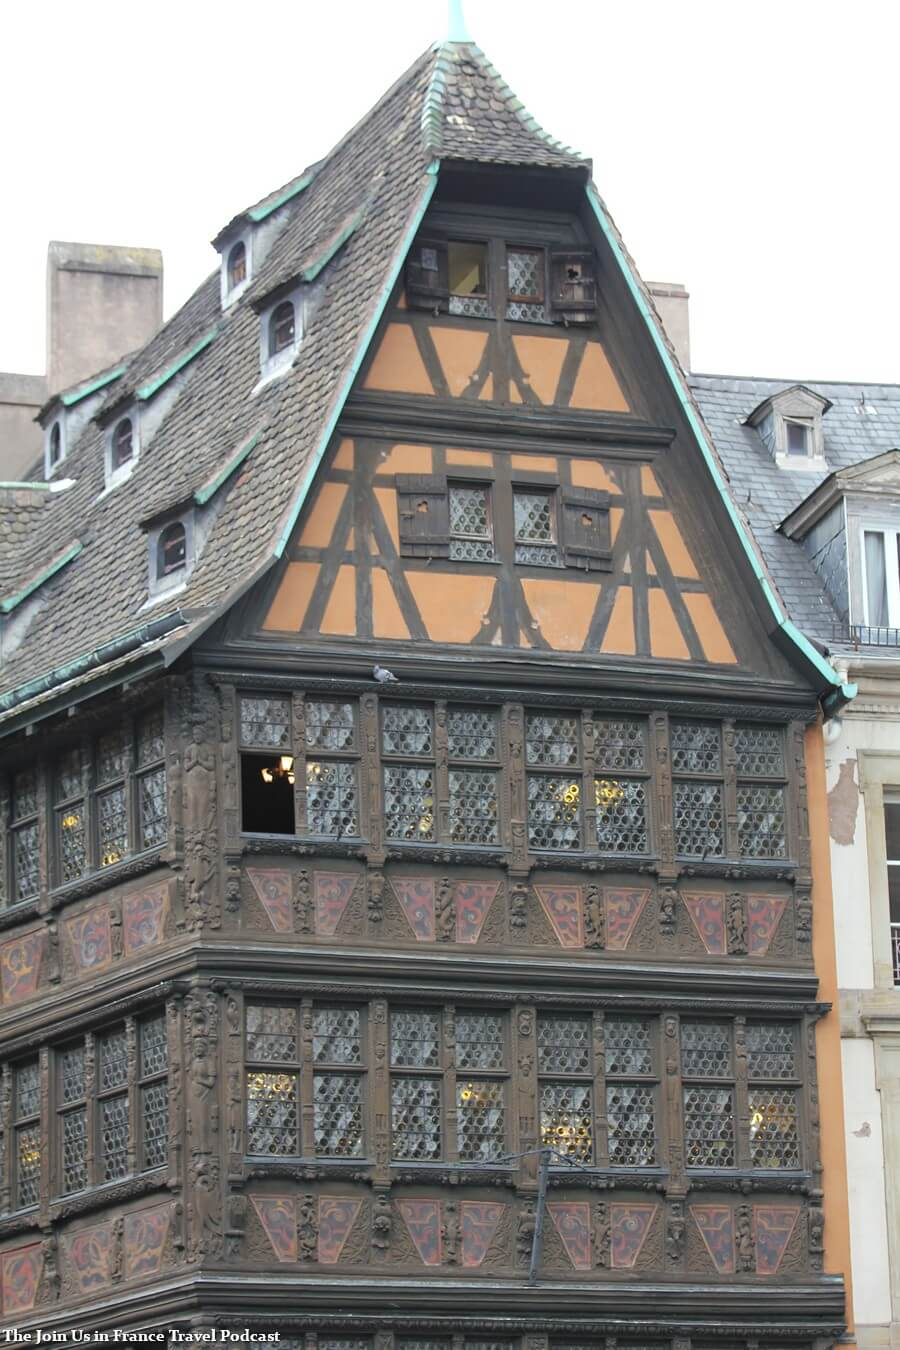 Half-timbered house in Strasbourg